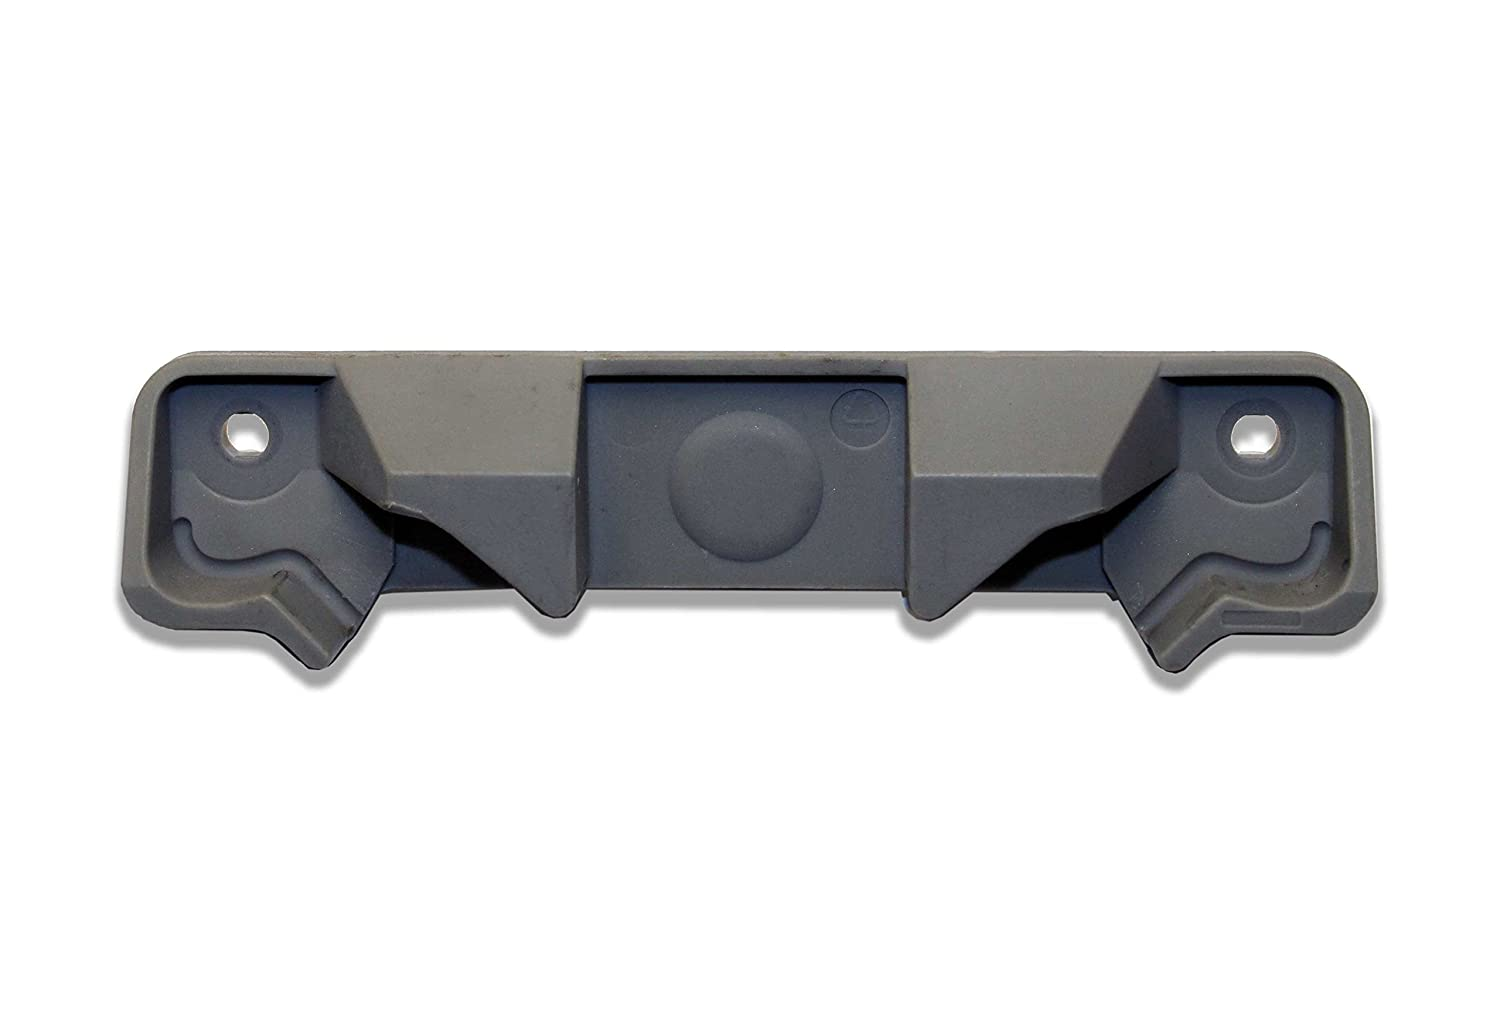 Striking plate, T-G2 lock, original Velux spare part made of plastic, counterpart for the locking of the Velux roof window at the top